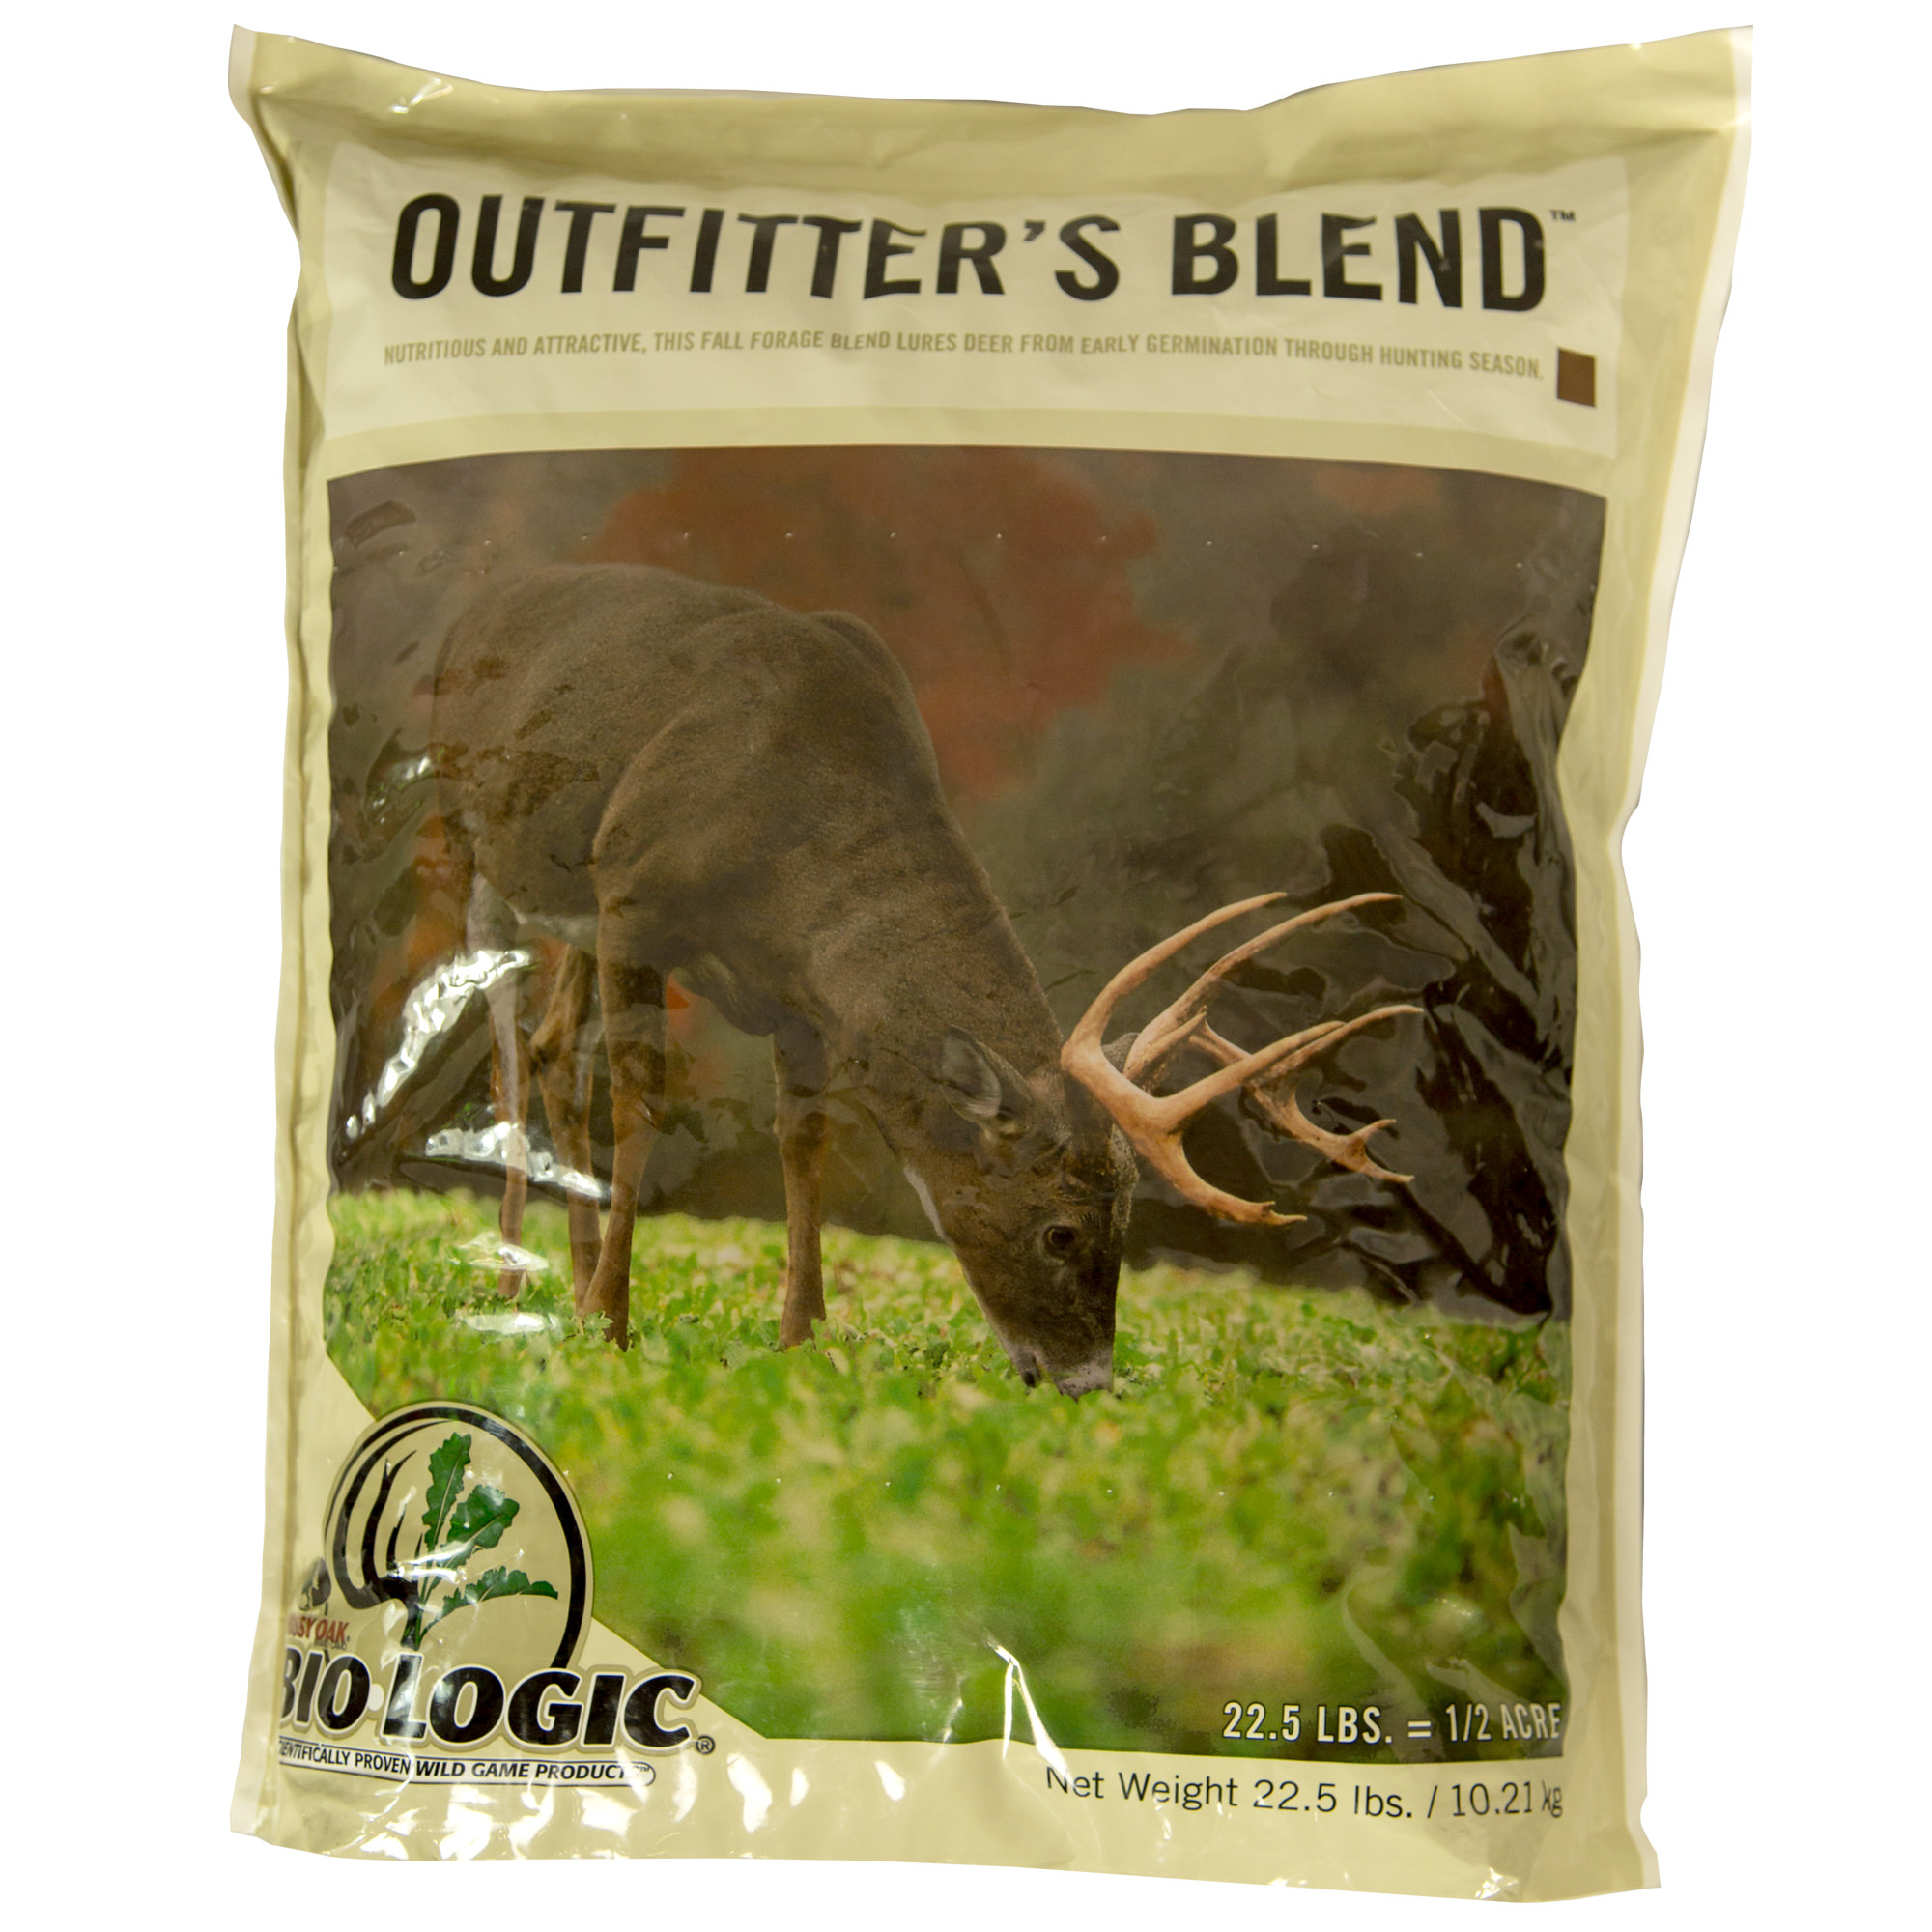 Mossy Oak BioLogic Outfitters Blend Food Plot Seed for Deer